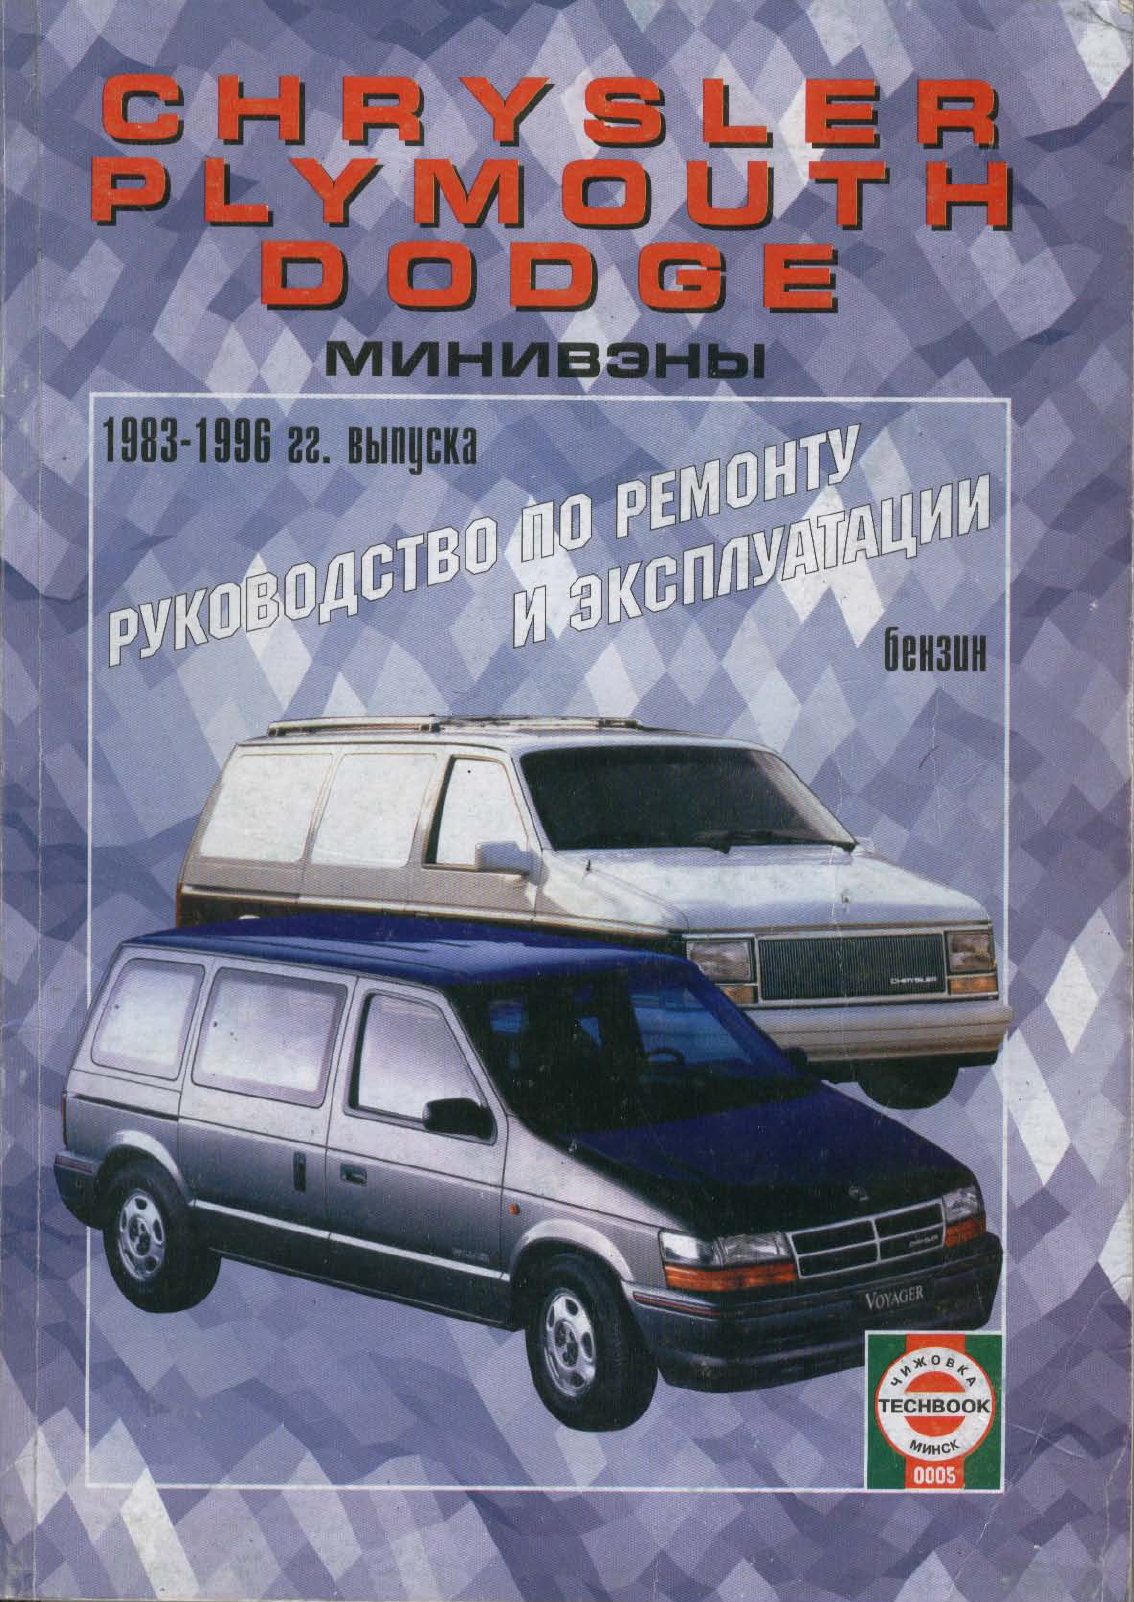 See our other Chrysler Grand Voyager Manuals: